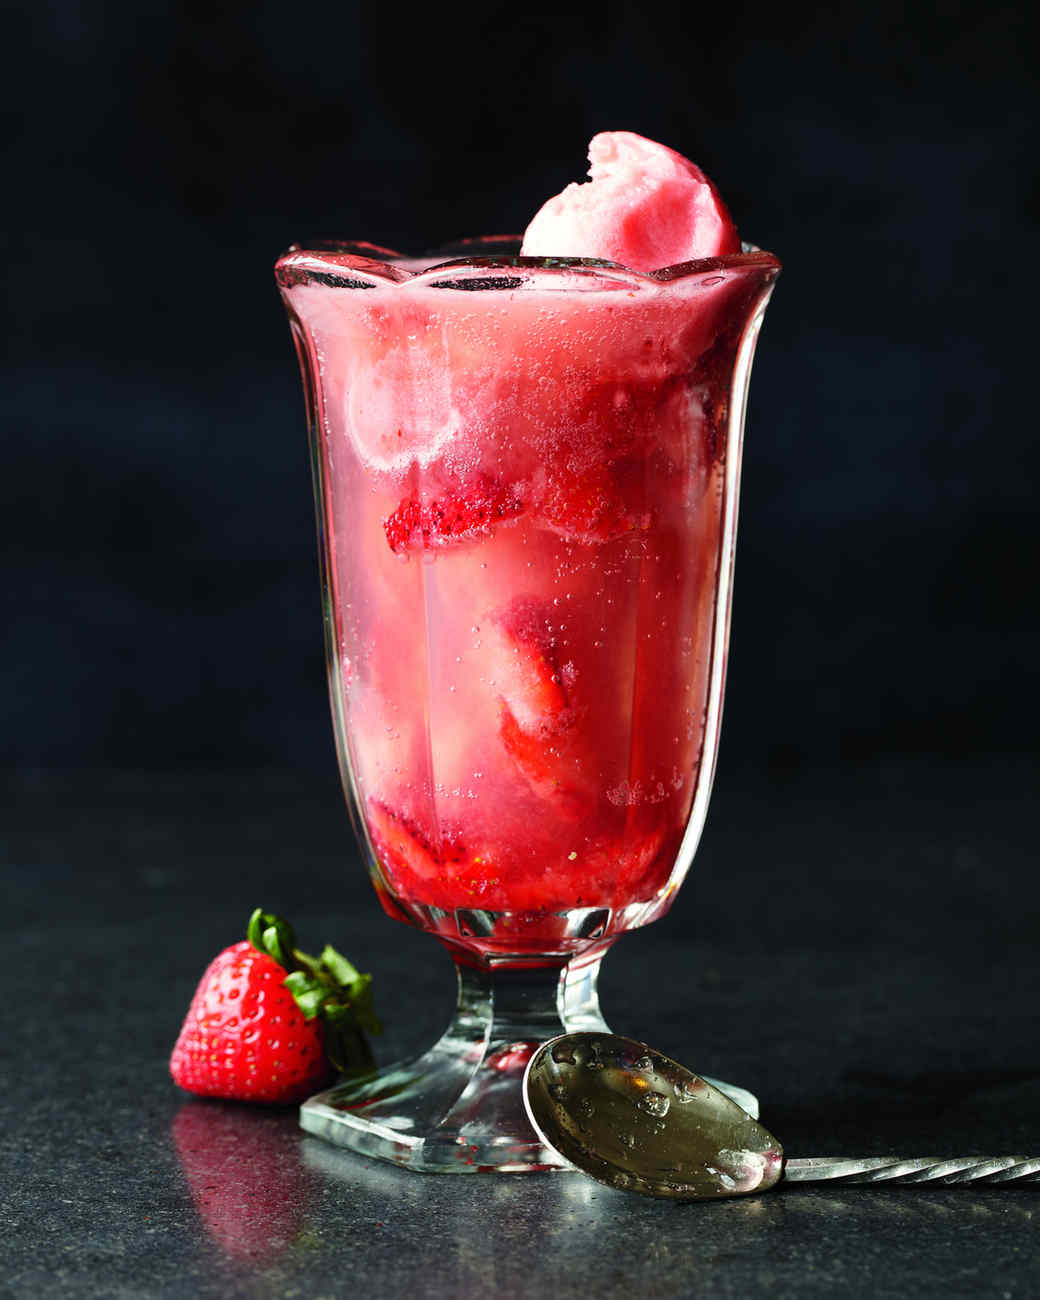 sorbet-soda-with-muddled-strawberries-md108188.jpg